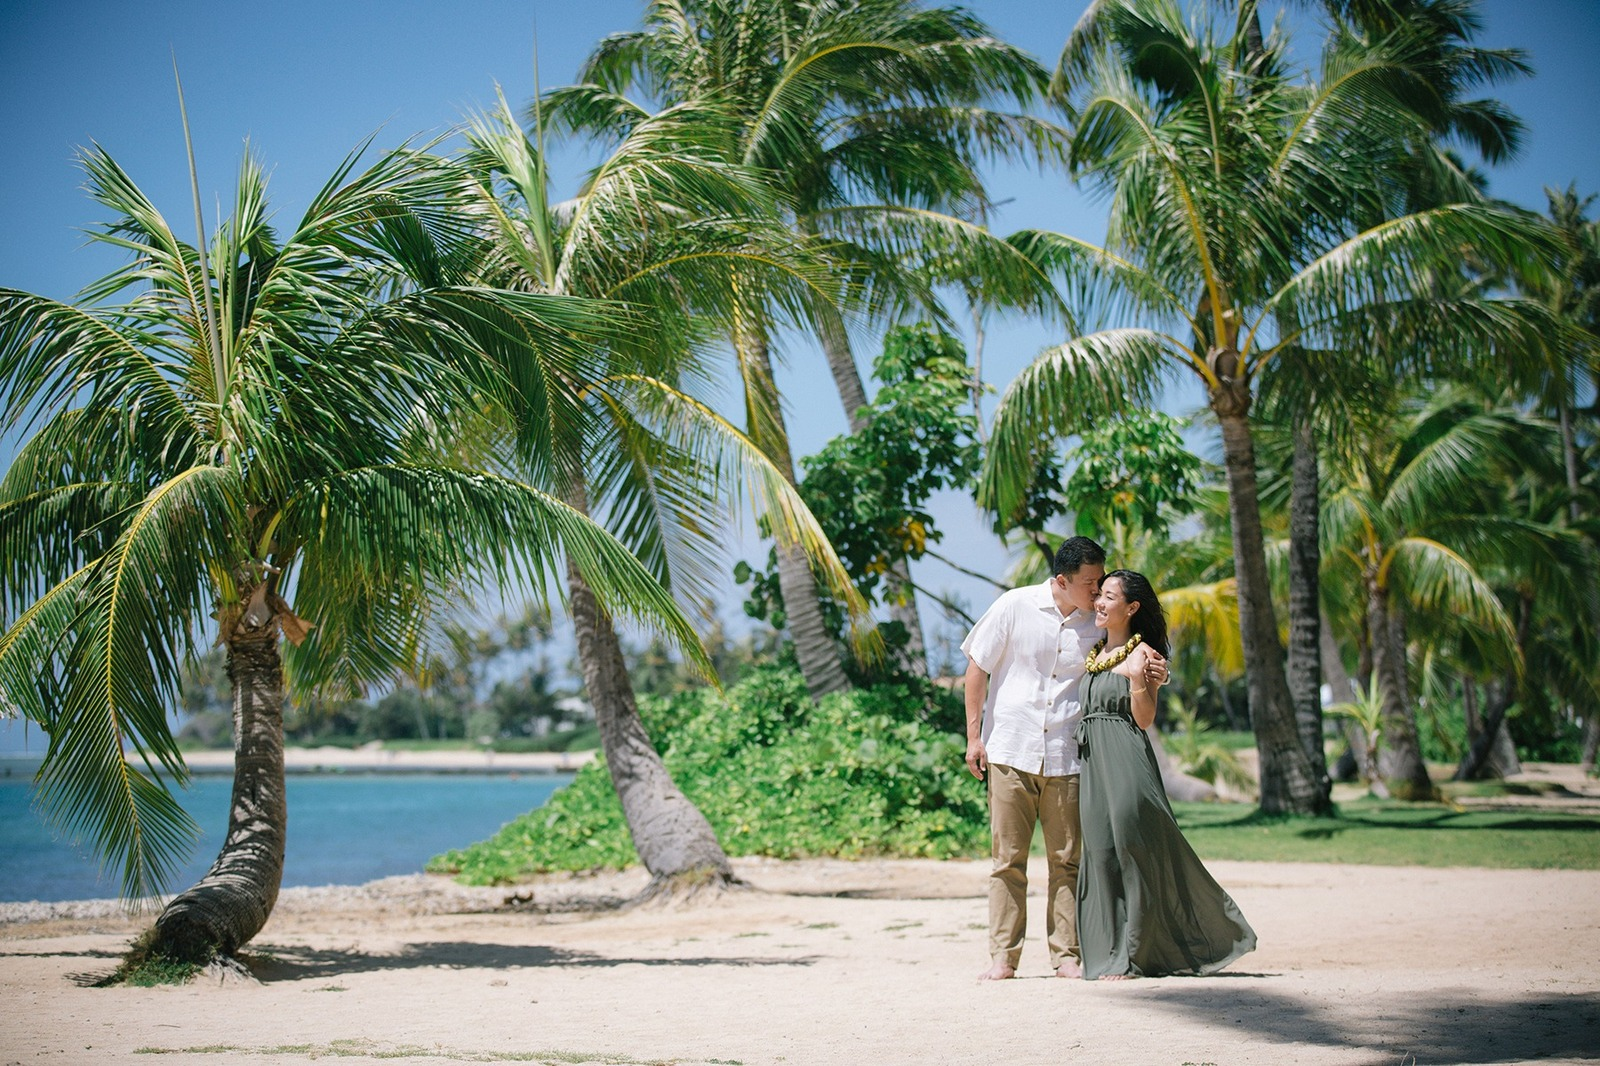 Oahu Engagement Photographer Tropical Kahala Beach Green Dress Palm Tress